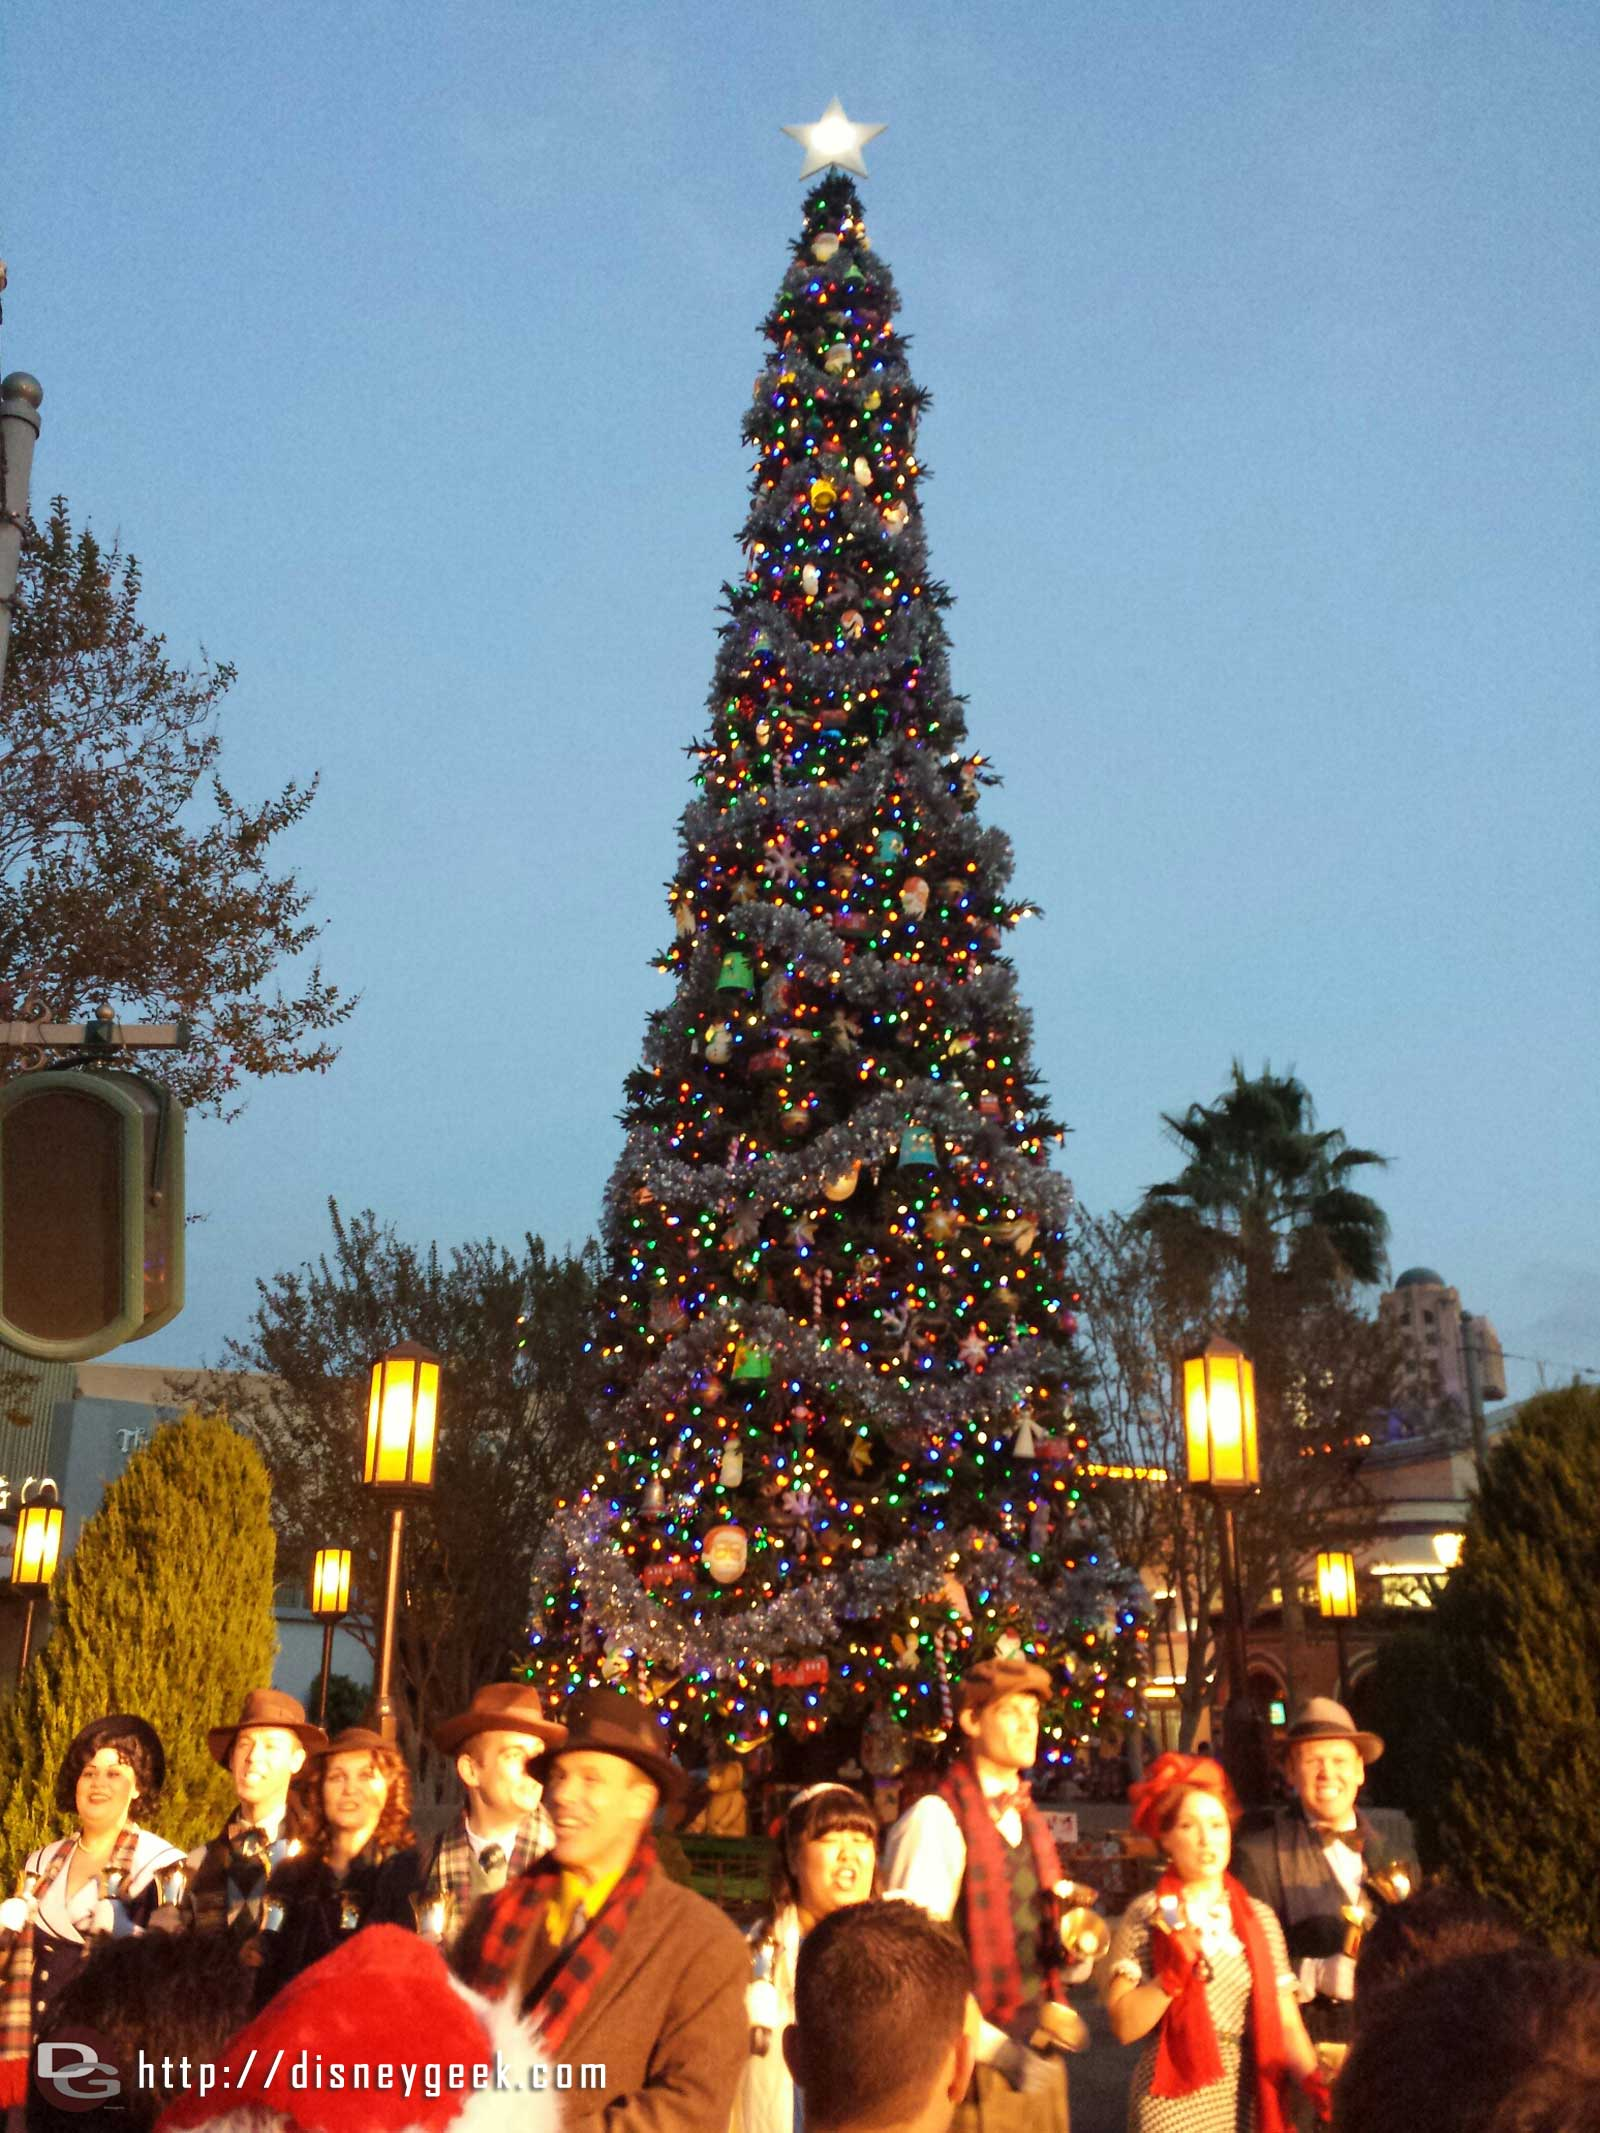 The #BuenaVistaStreet Tree lit up for the evening